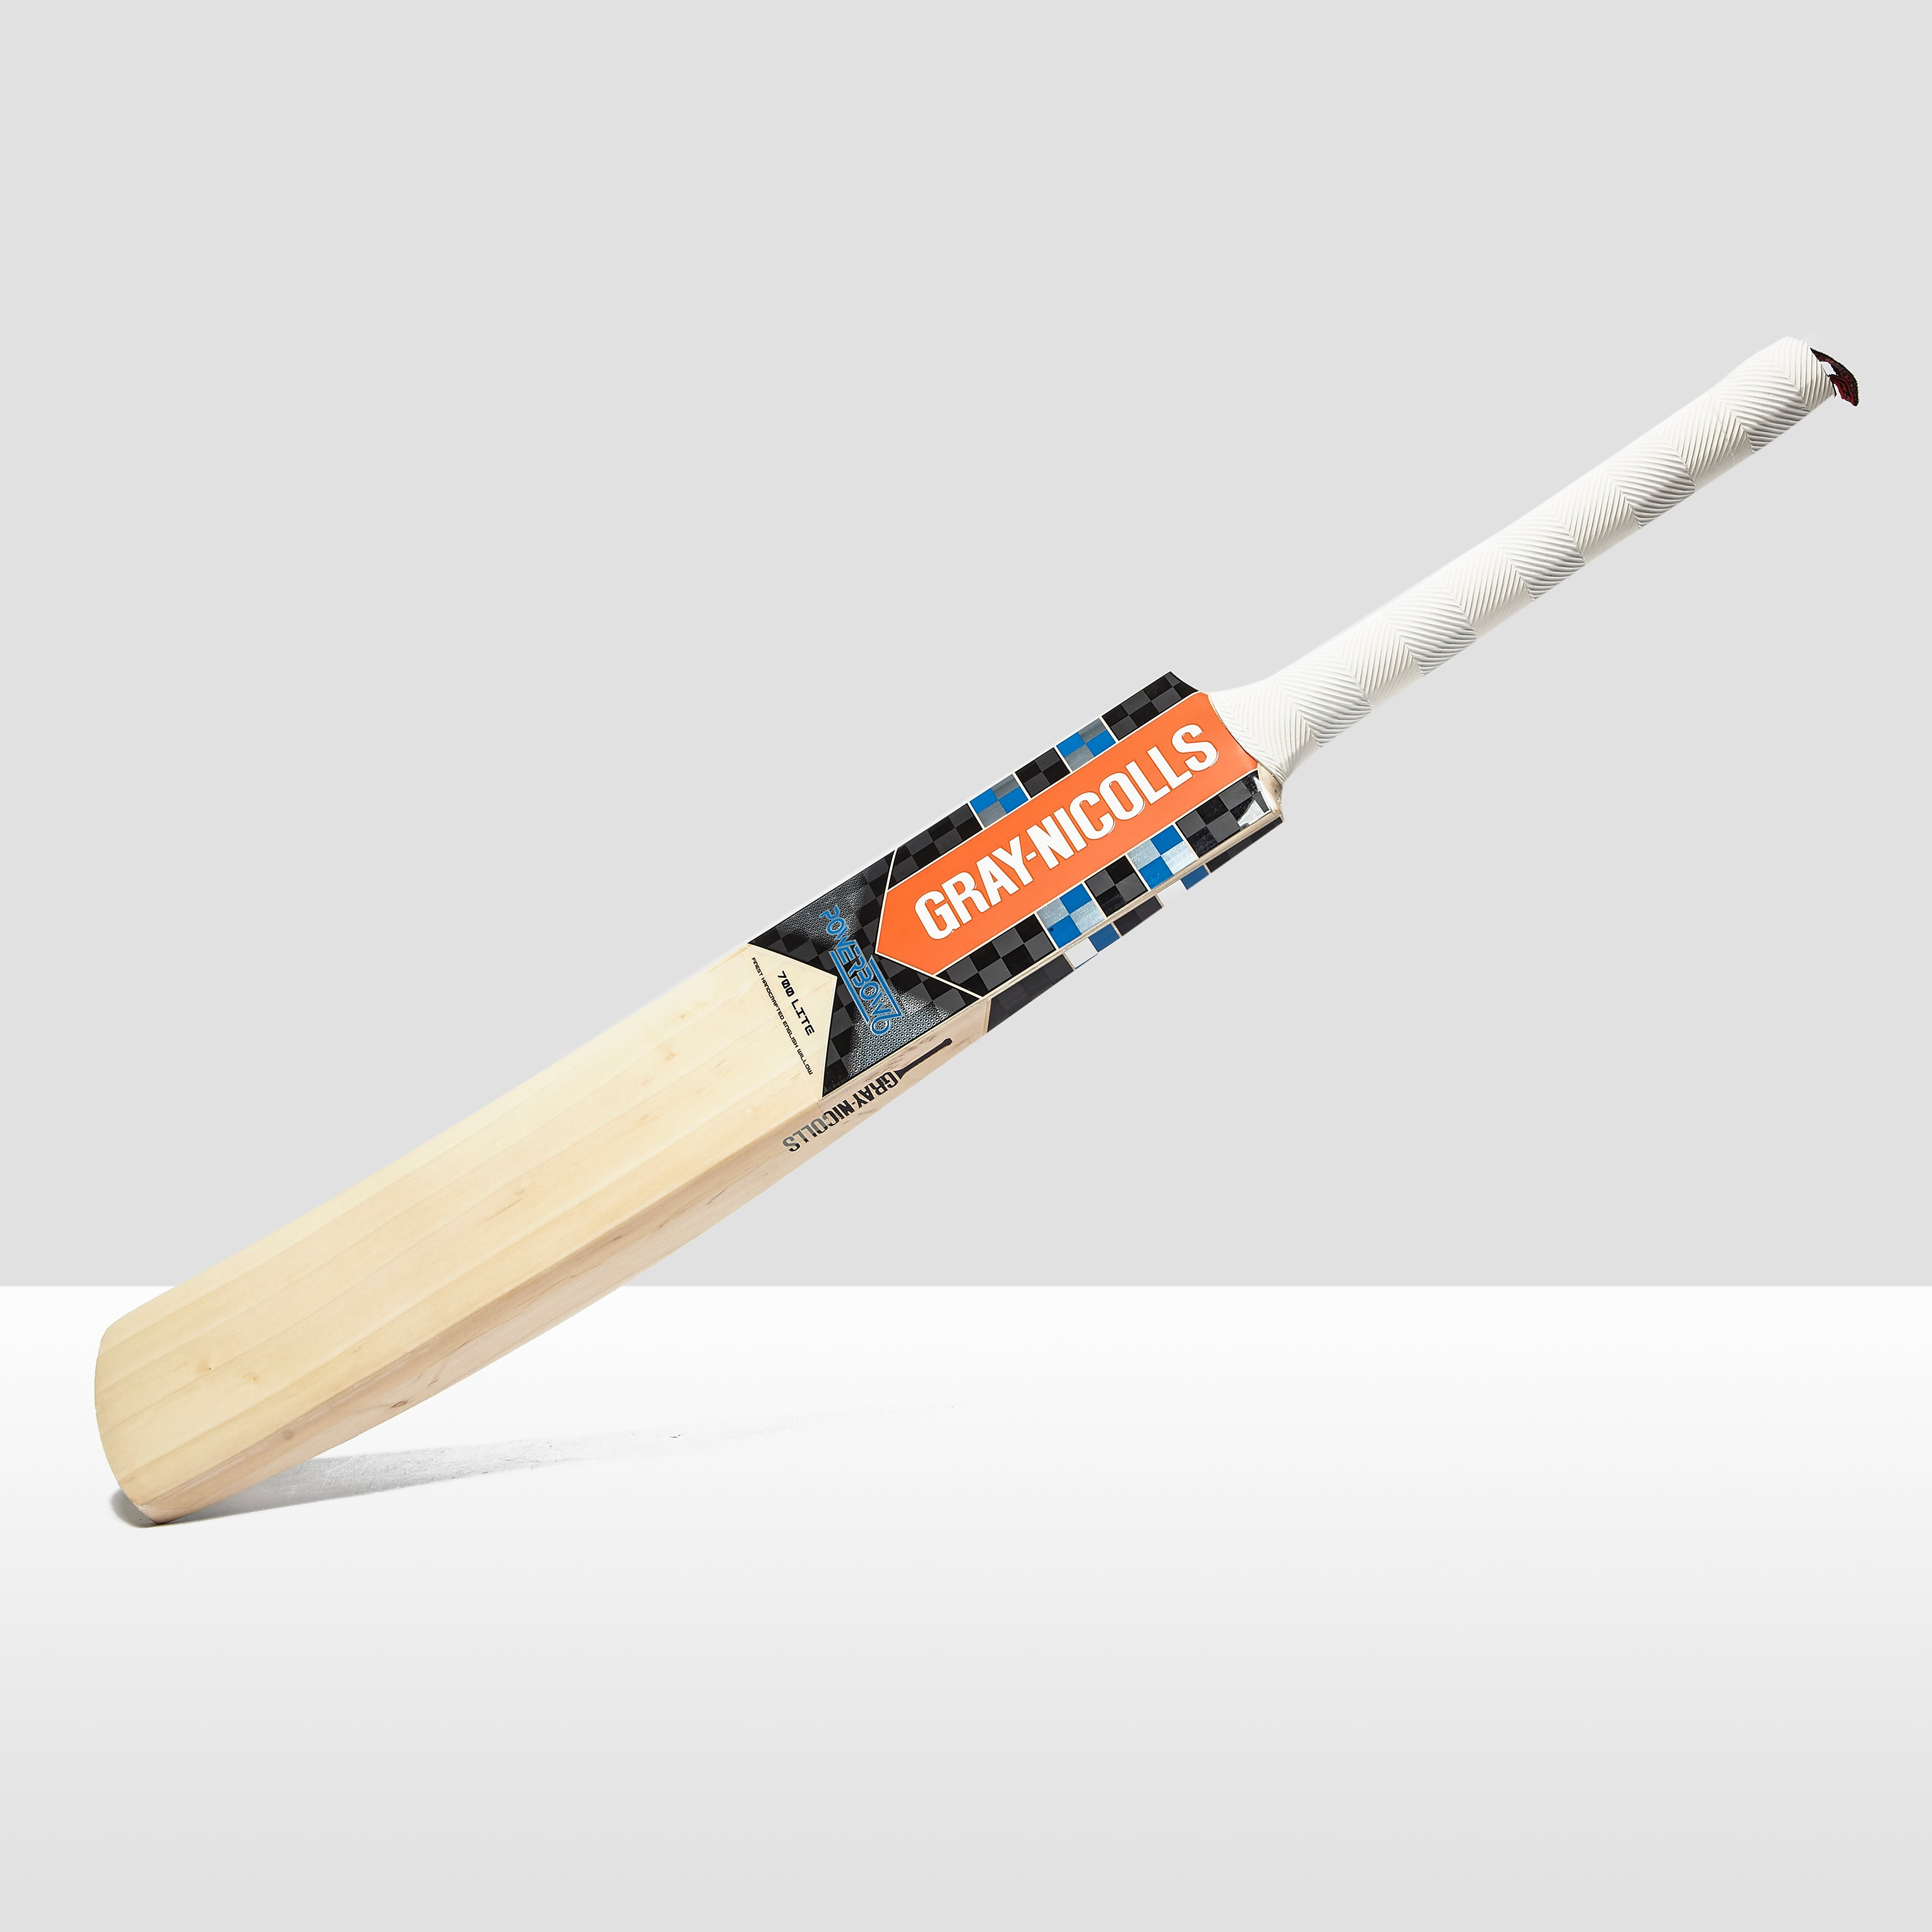 Gray Nicolls Powerbow 6 700 Lite Cricket Bat